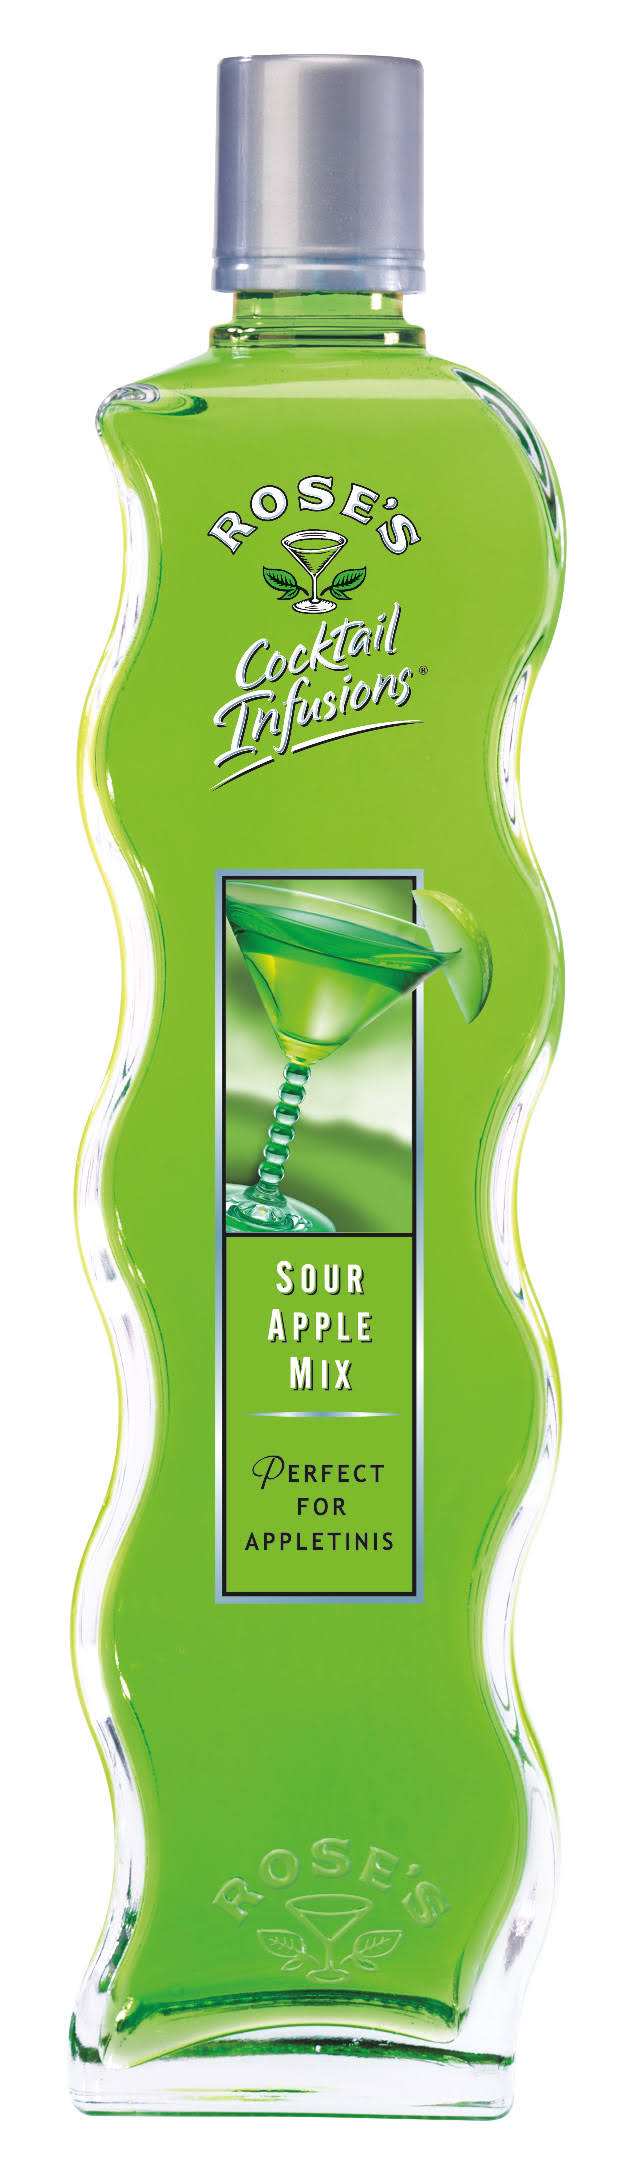 Rose's Cocktail Infusions Sour Apple Mix - 20 oz